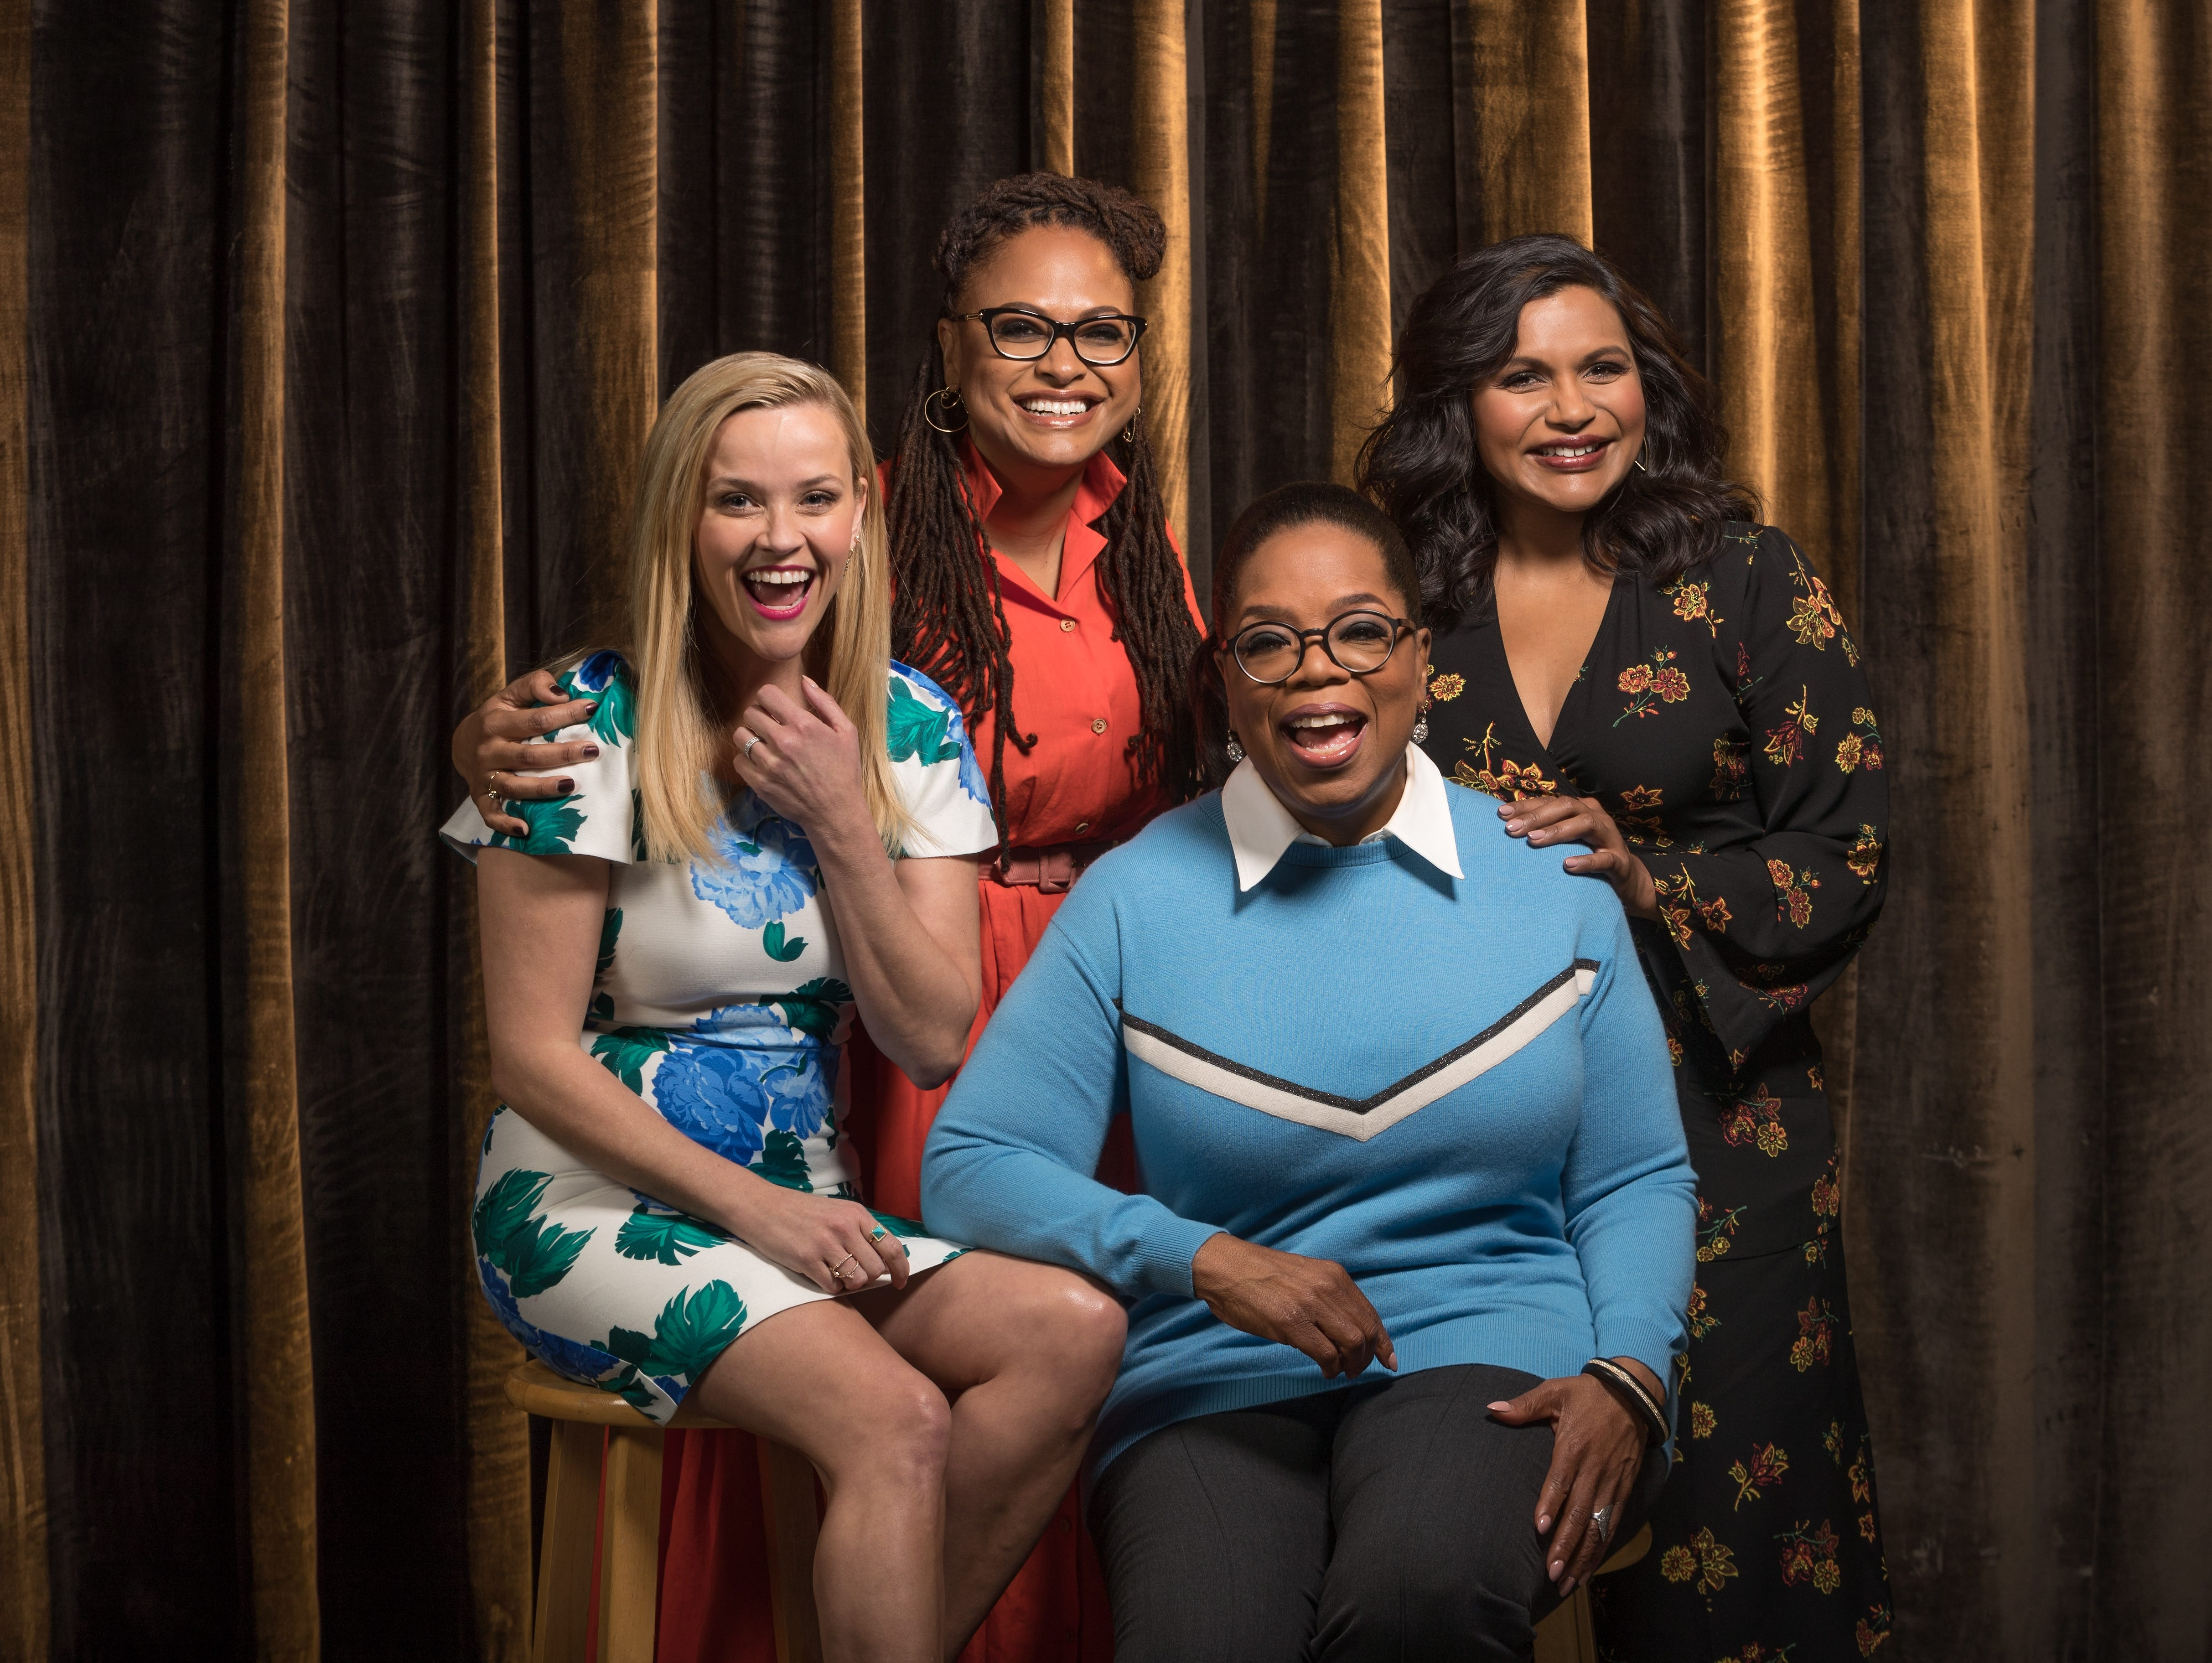 """Feb. 25: Reese Witherspoon, Ava DuVernay, Oprah Winfrey and Mindy Kaling pose together before an interview in Hollywood about """"A Wrinkle in Time."""""""